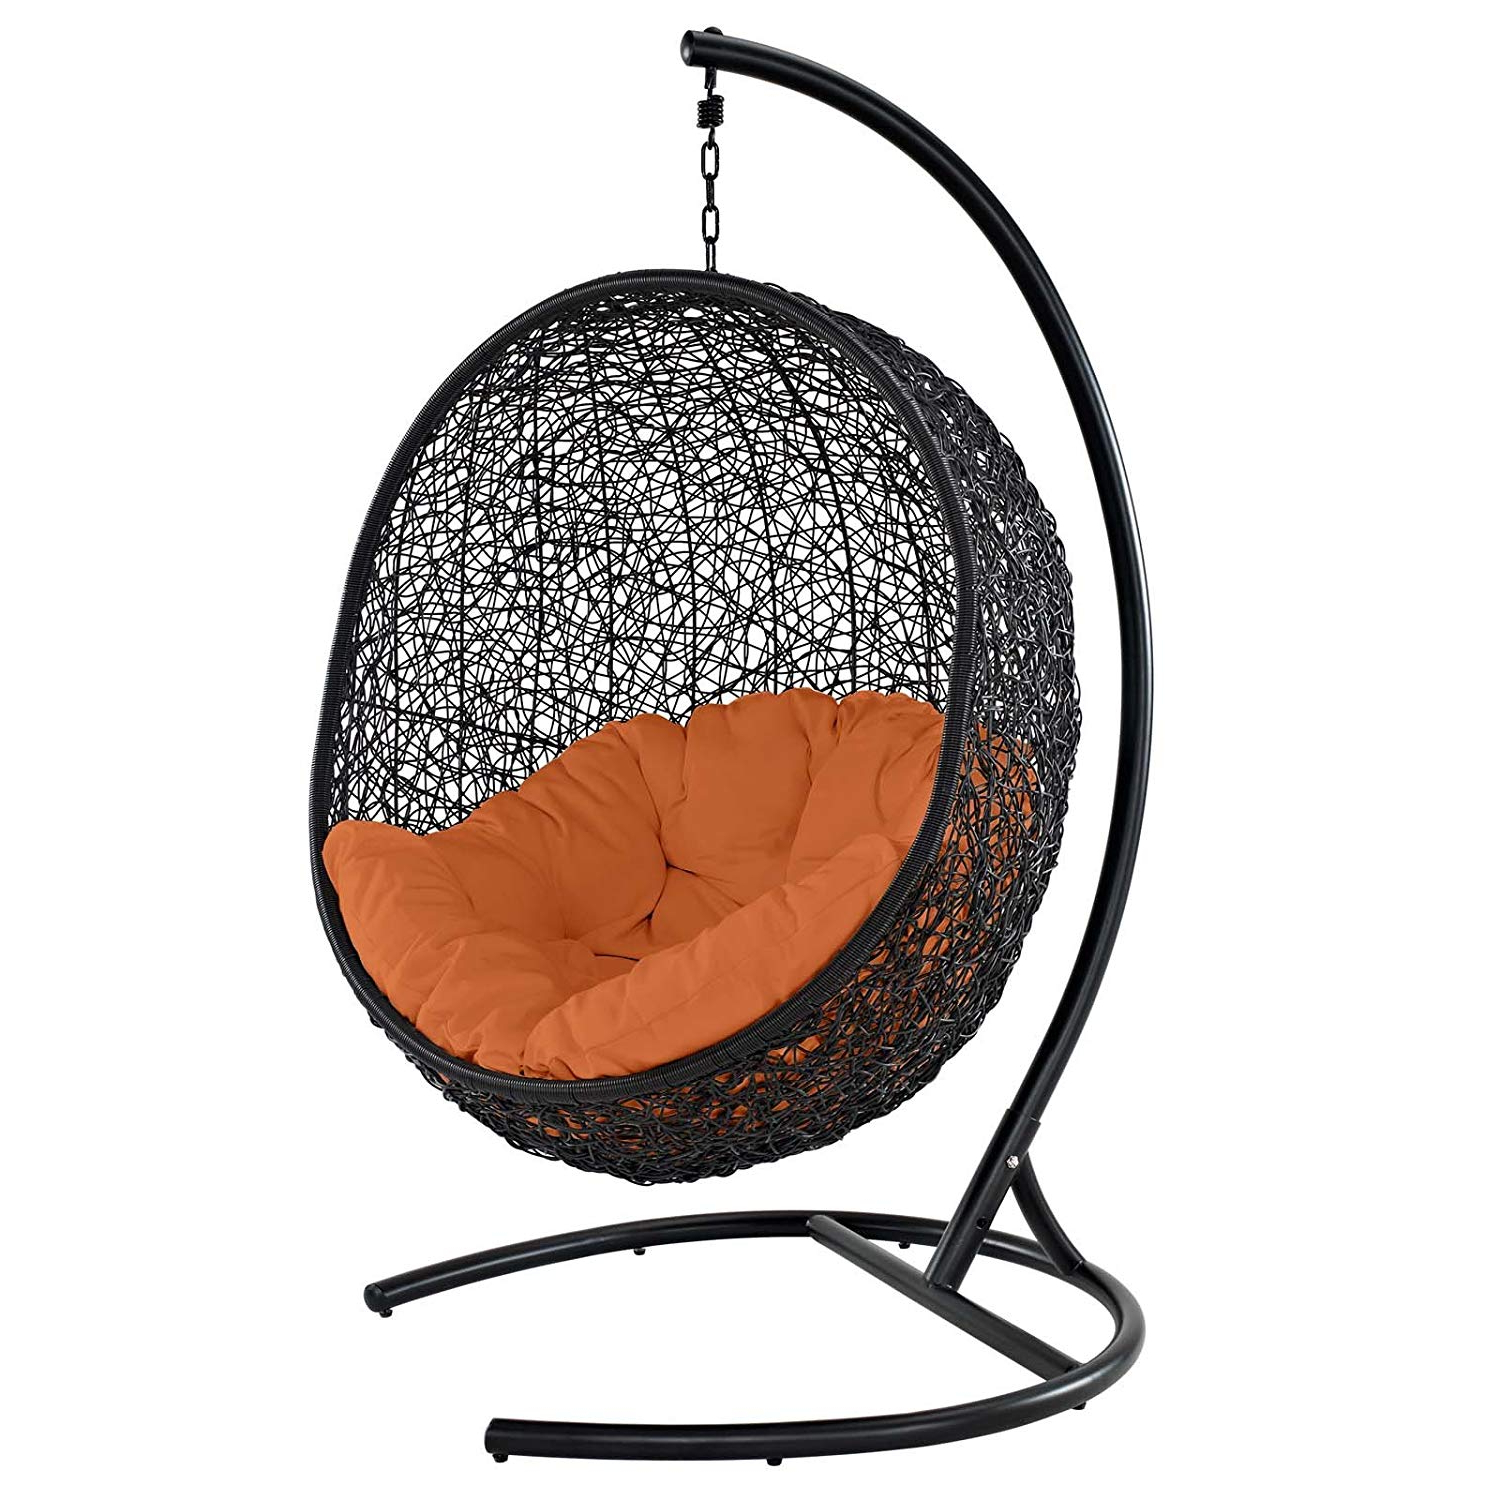 Outdoor Wicker Plastic Tear Porch Swings With Stand In 2020 12 Best Hanging Egg Chairs To Buy In 2020 – Outdoor & Indoor (Gallery 12 of 30)